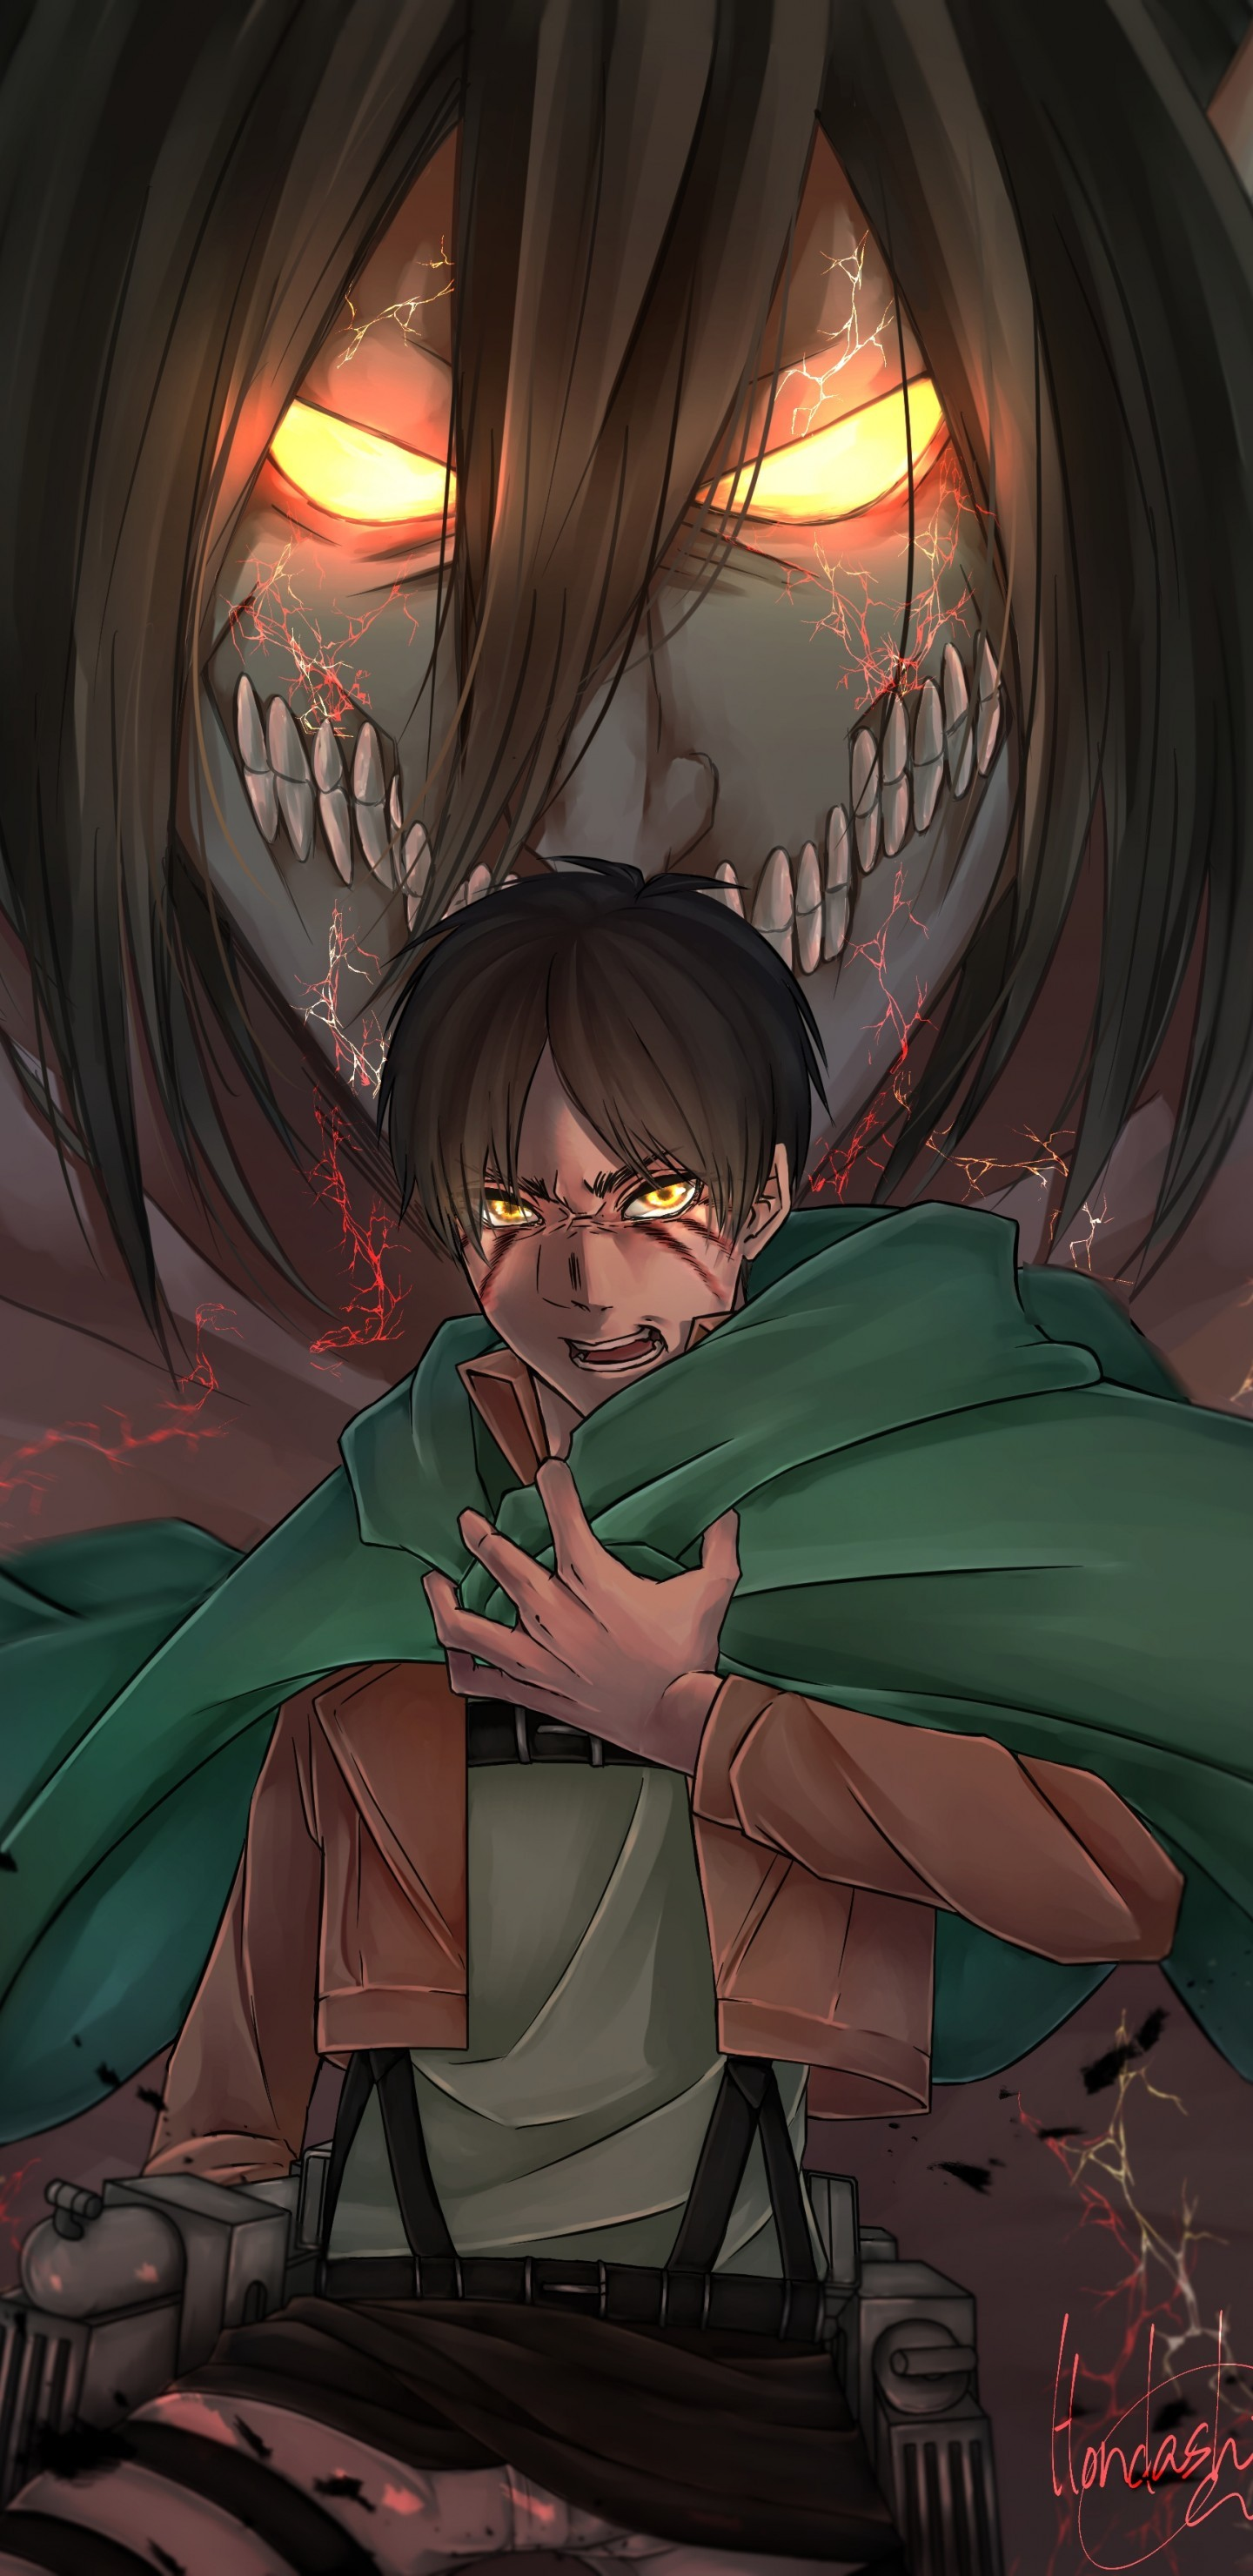 Eren Jaeger Shingeki No Kyojin Titan Attack On Titan Eren Jaeger Wallpaper Android 1440x2960 Wallpaper Teahub Io